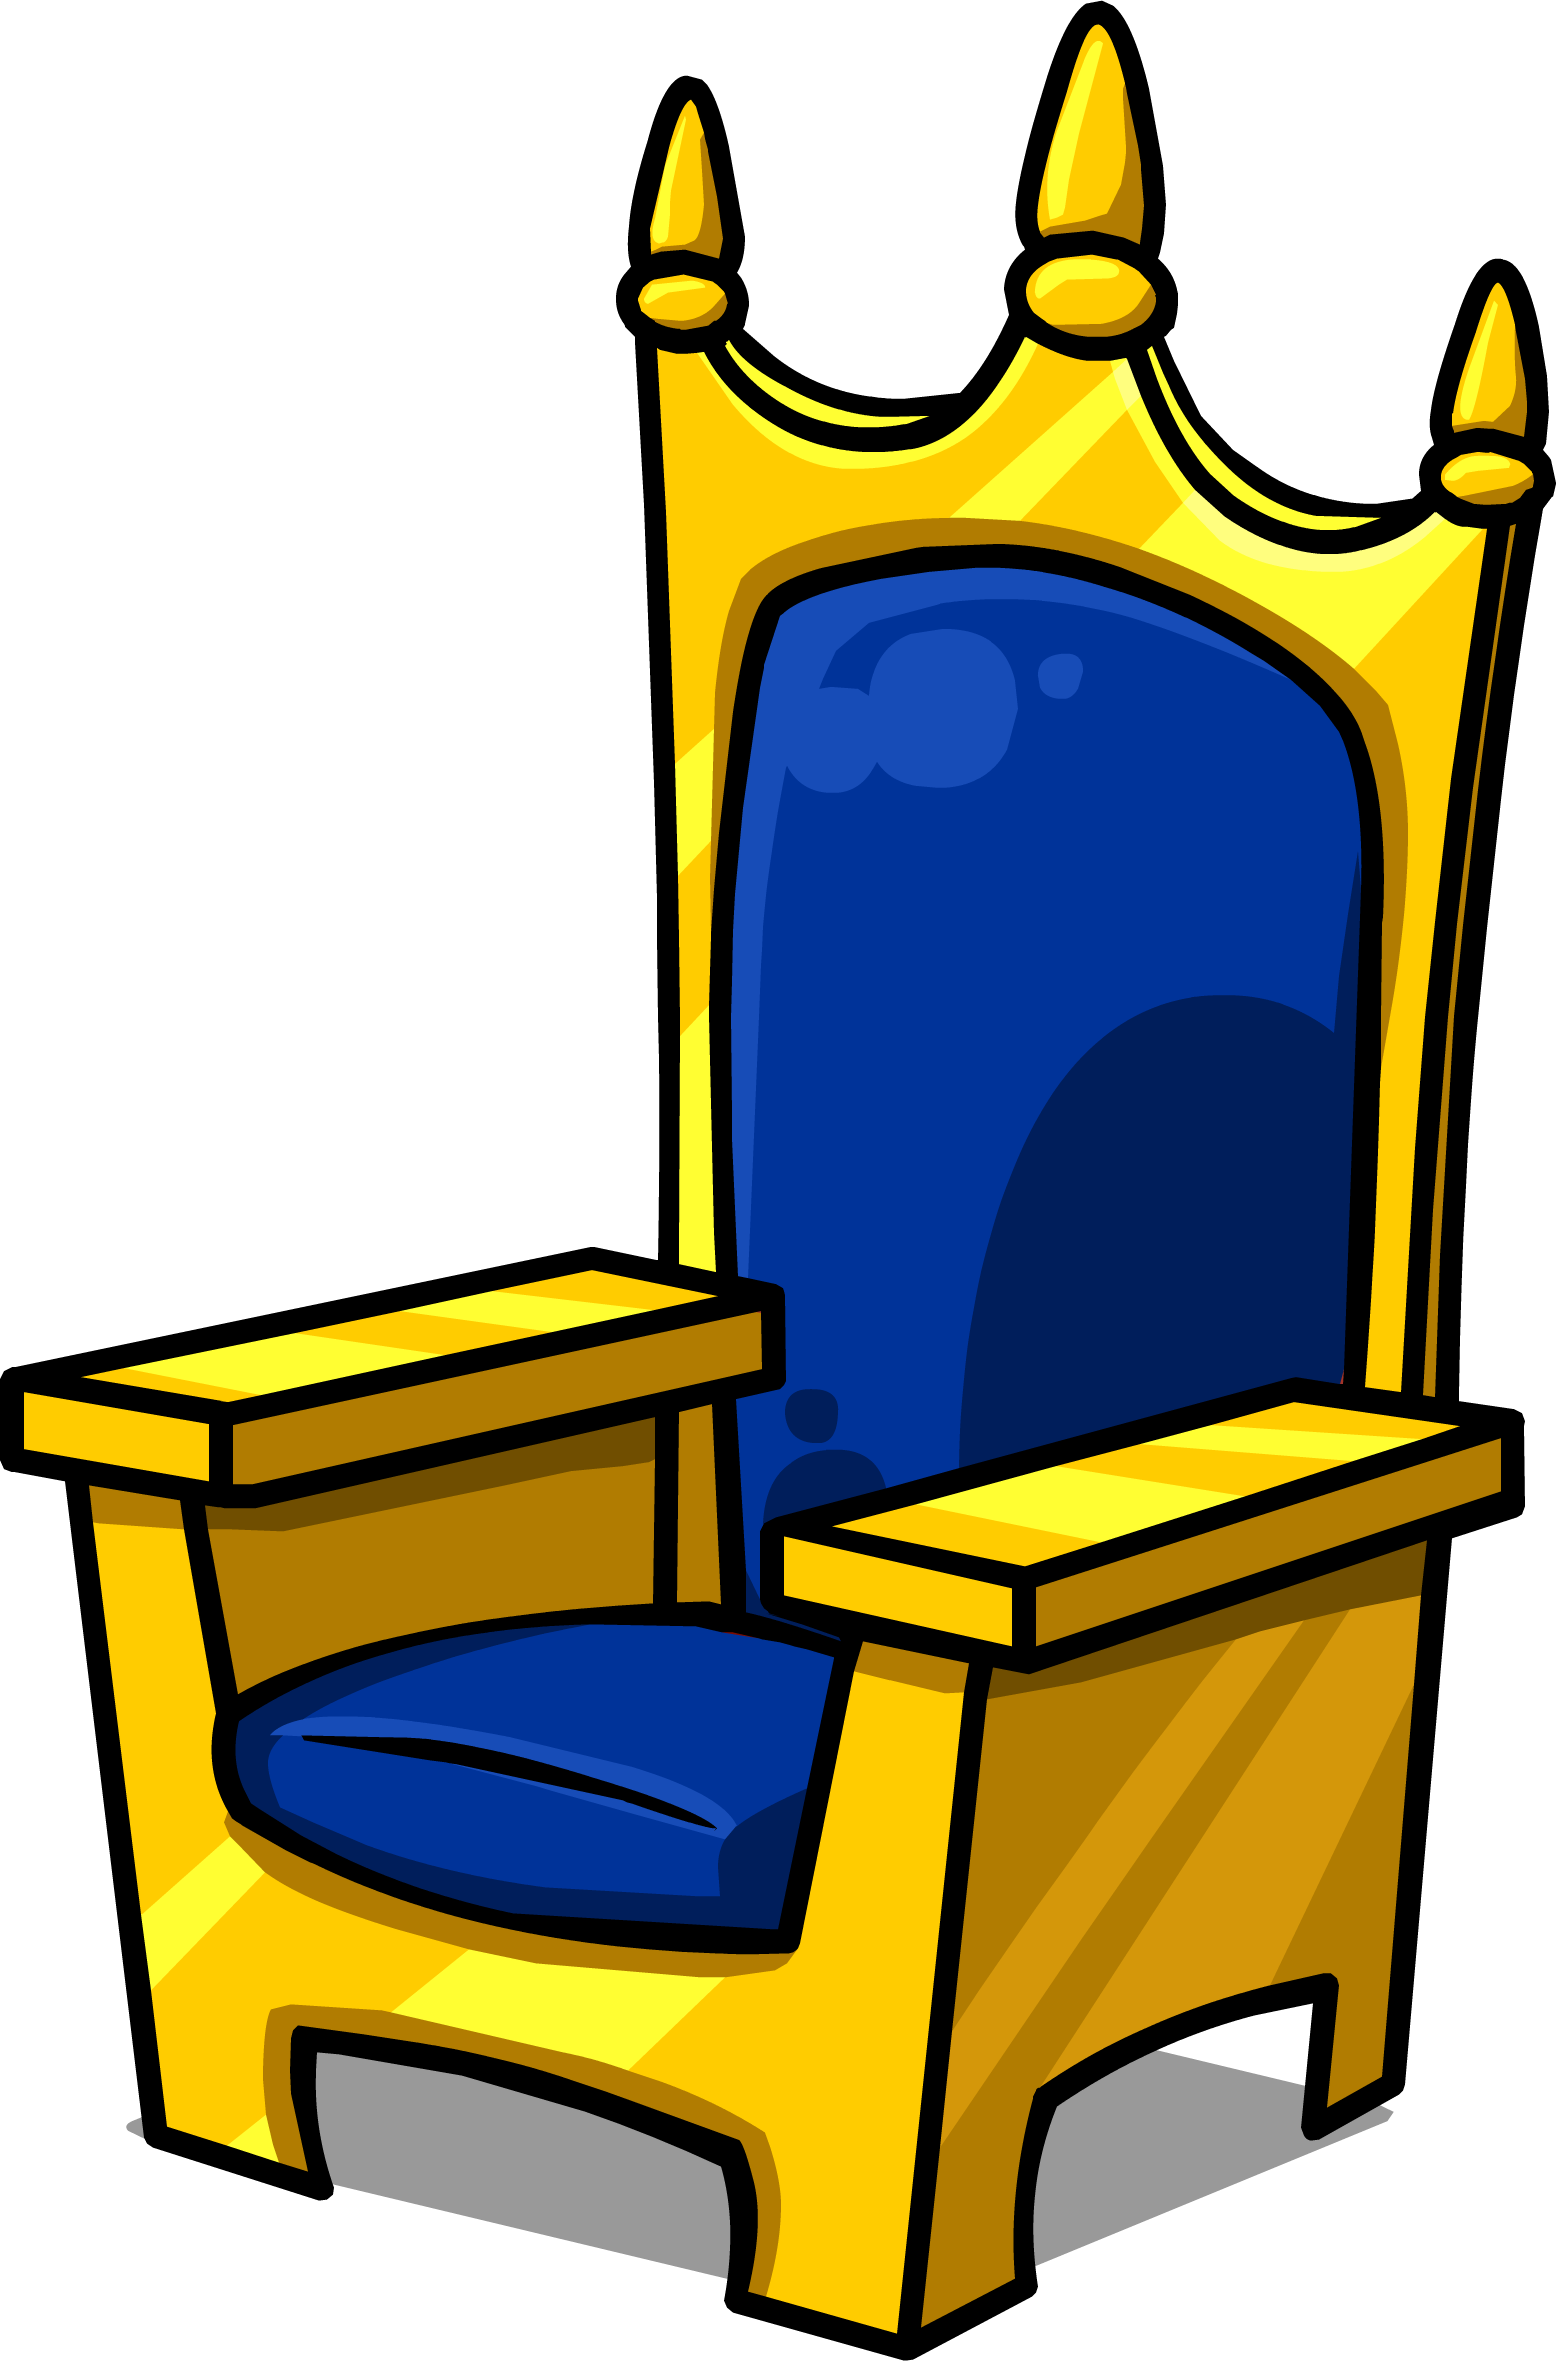 clip art royalty free stock Throne clipart. Blue free on dumielauxepices